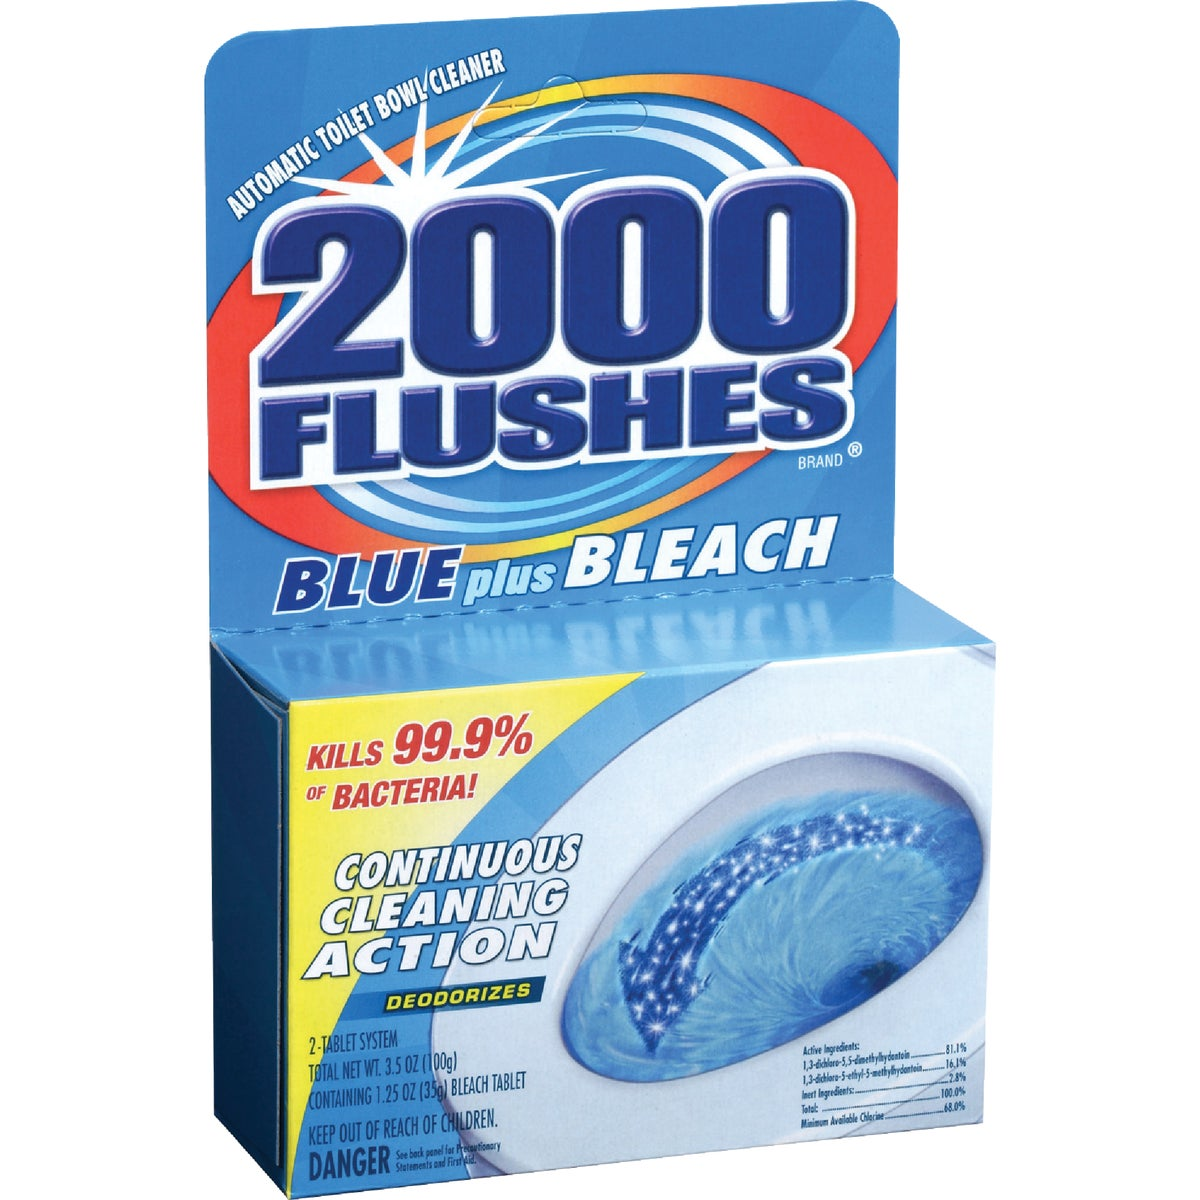 BLU/BLCH TOILET CLEANER - 208017 by W D 40 Company